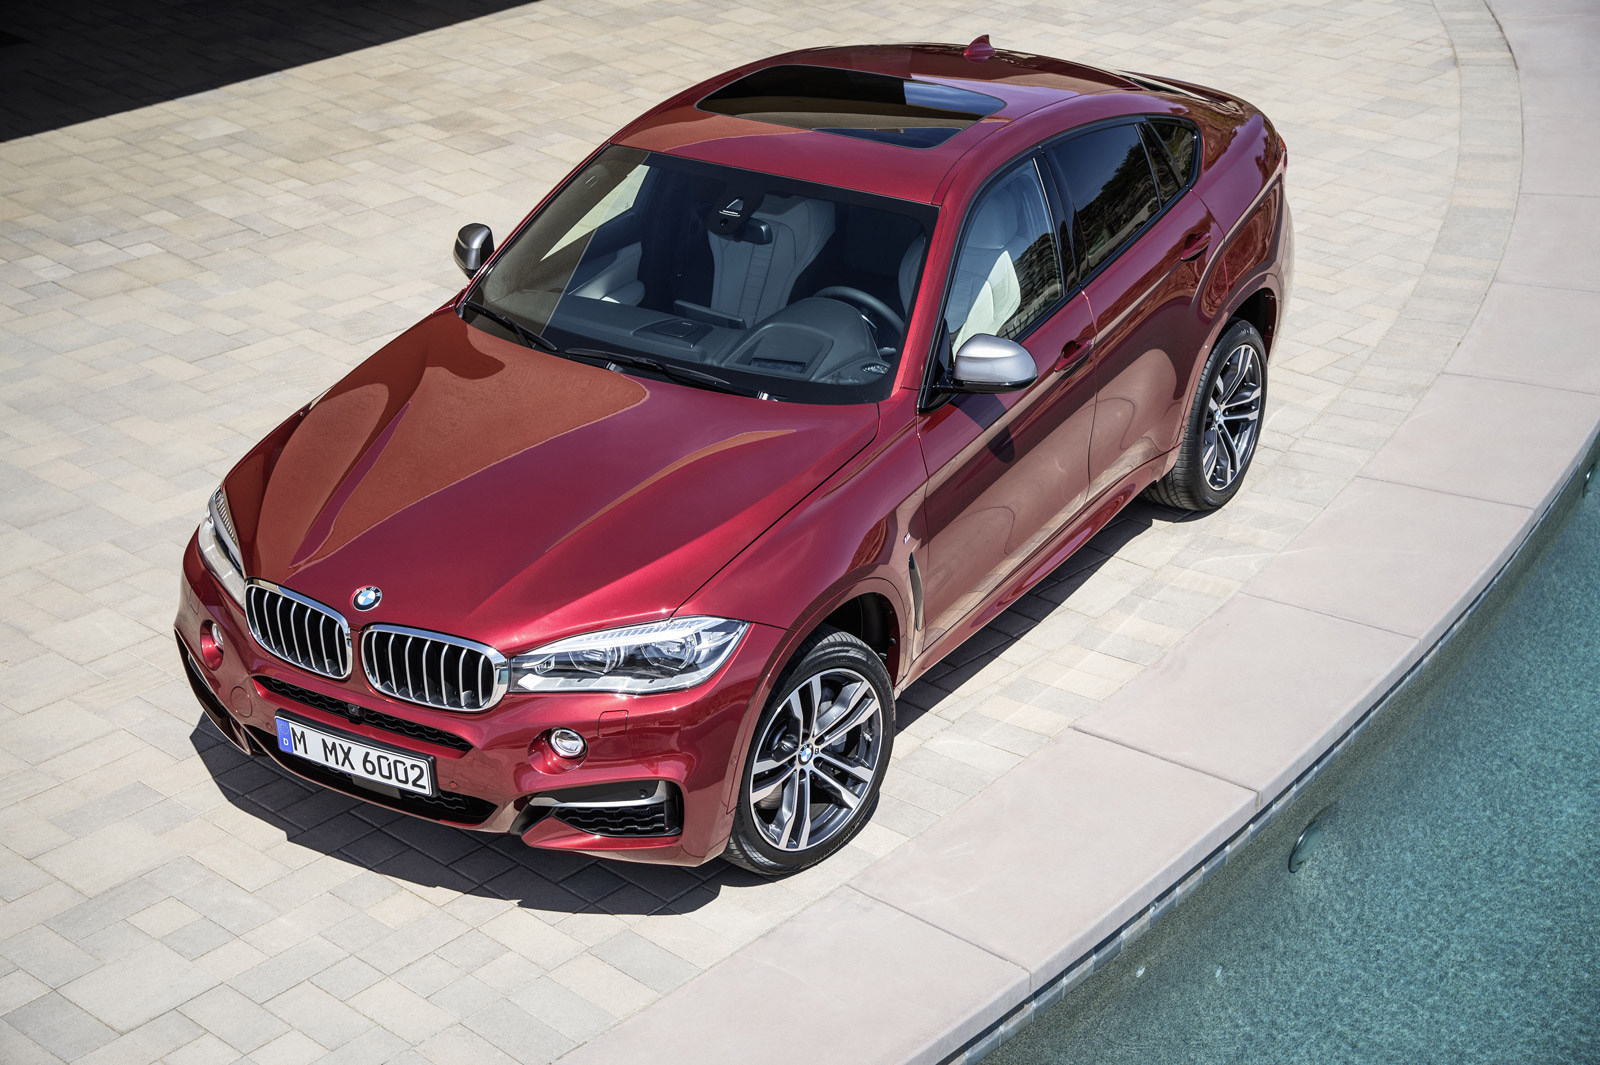 First Look At 2015 Bmw X6 S M Sport Package And X6 M50d Variant